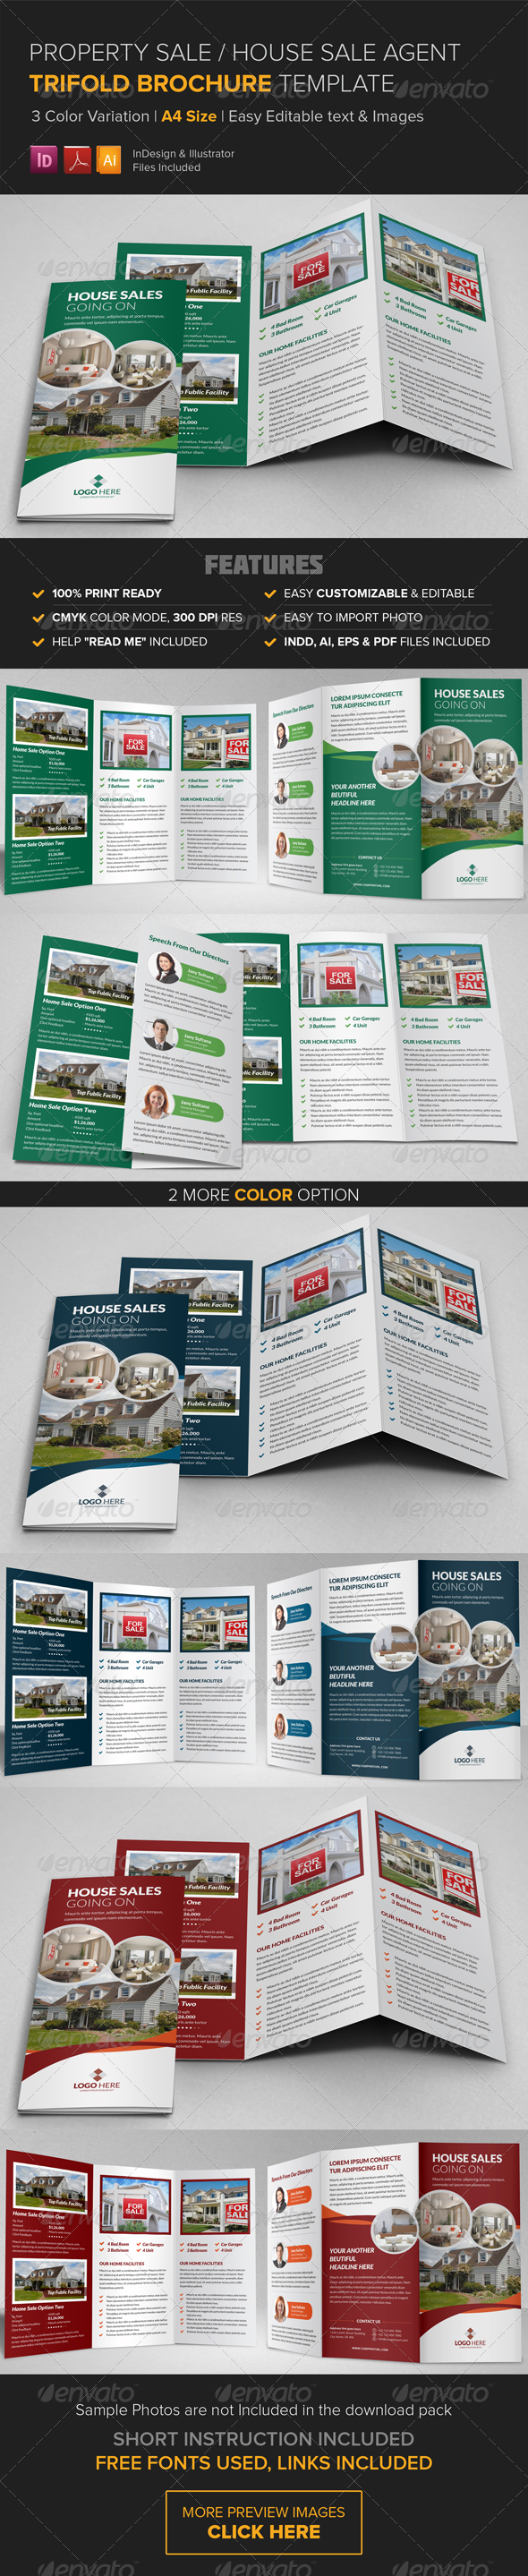 Property Sale Trifold Brochure Template Trifold Brochure Template Trifold Brochure Brochure Design Template